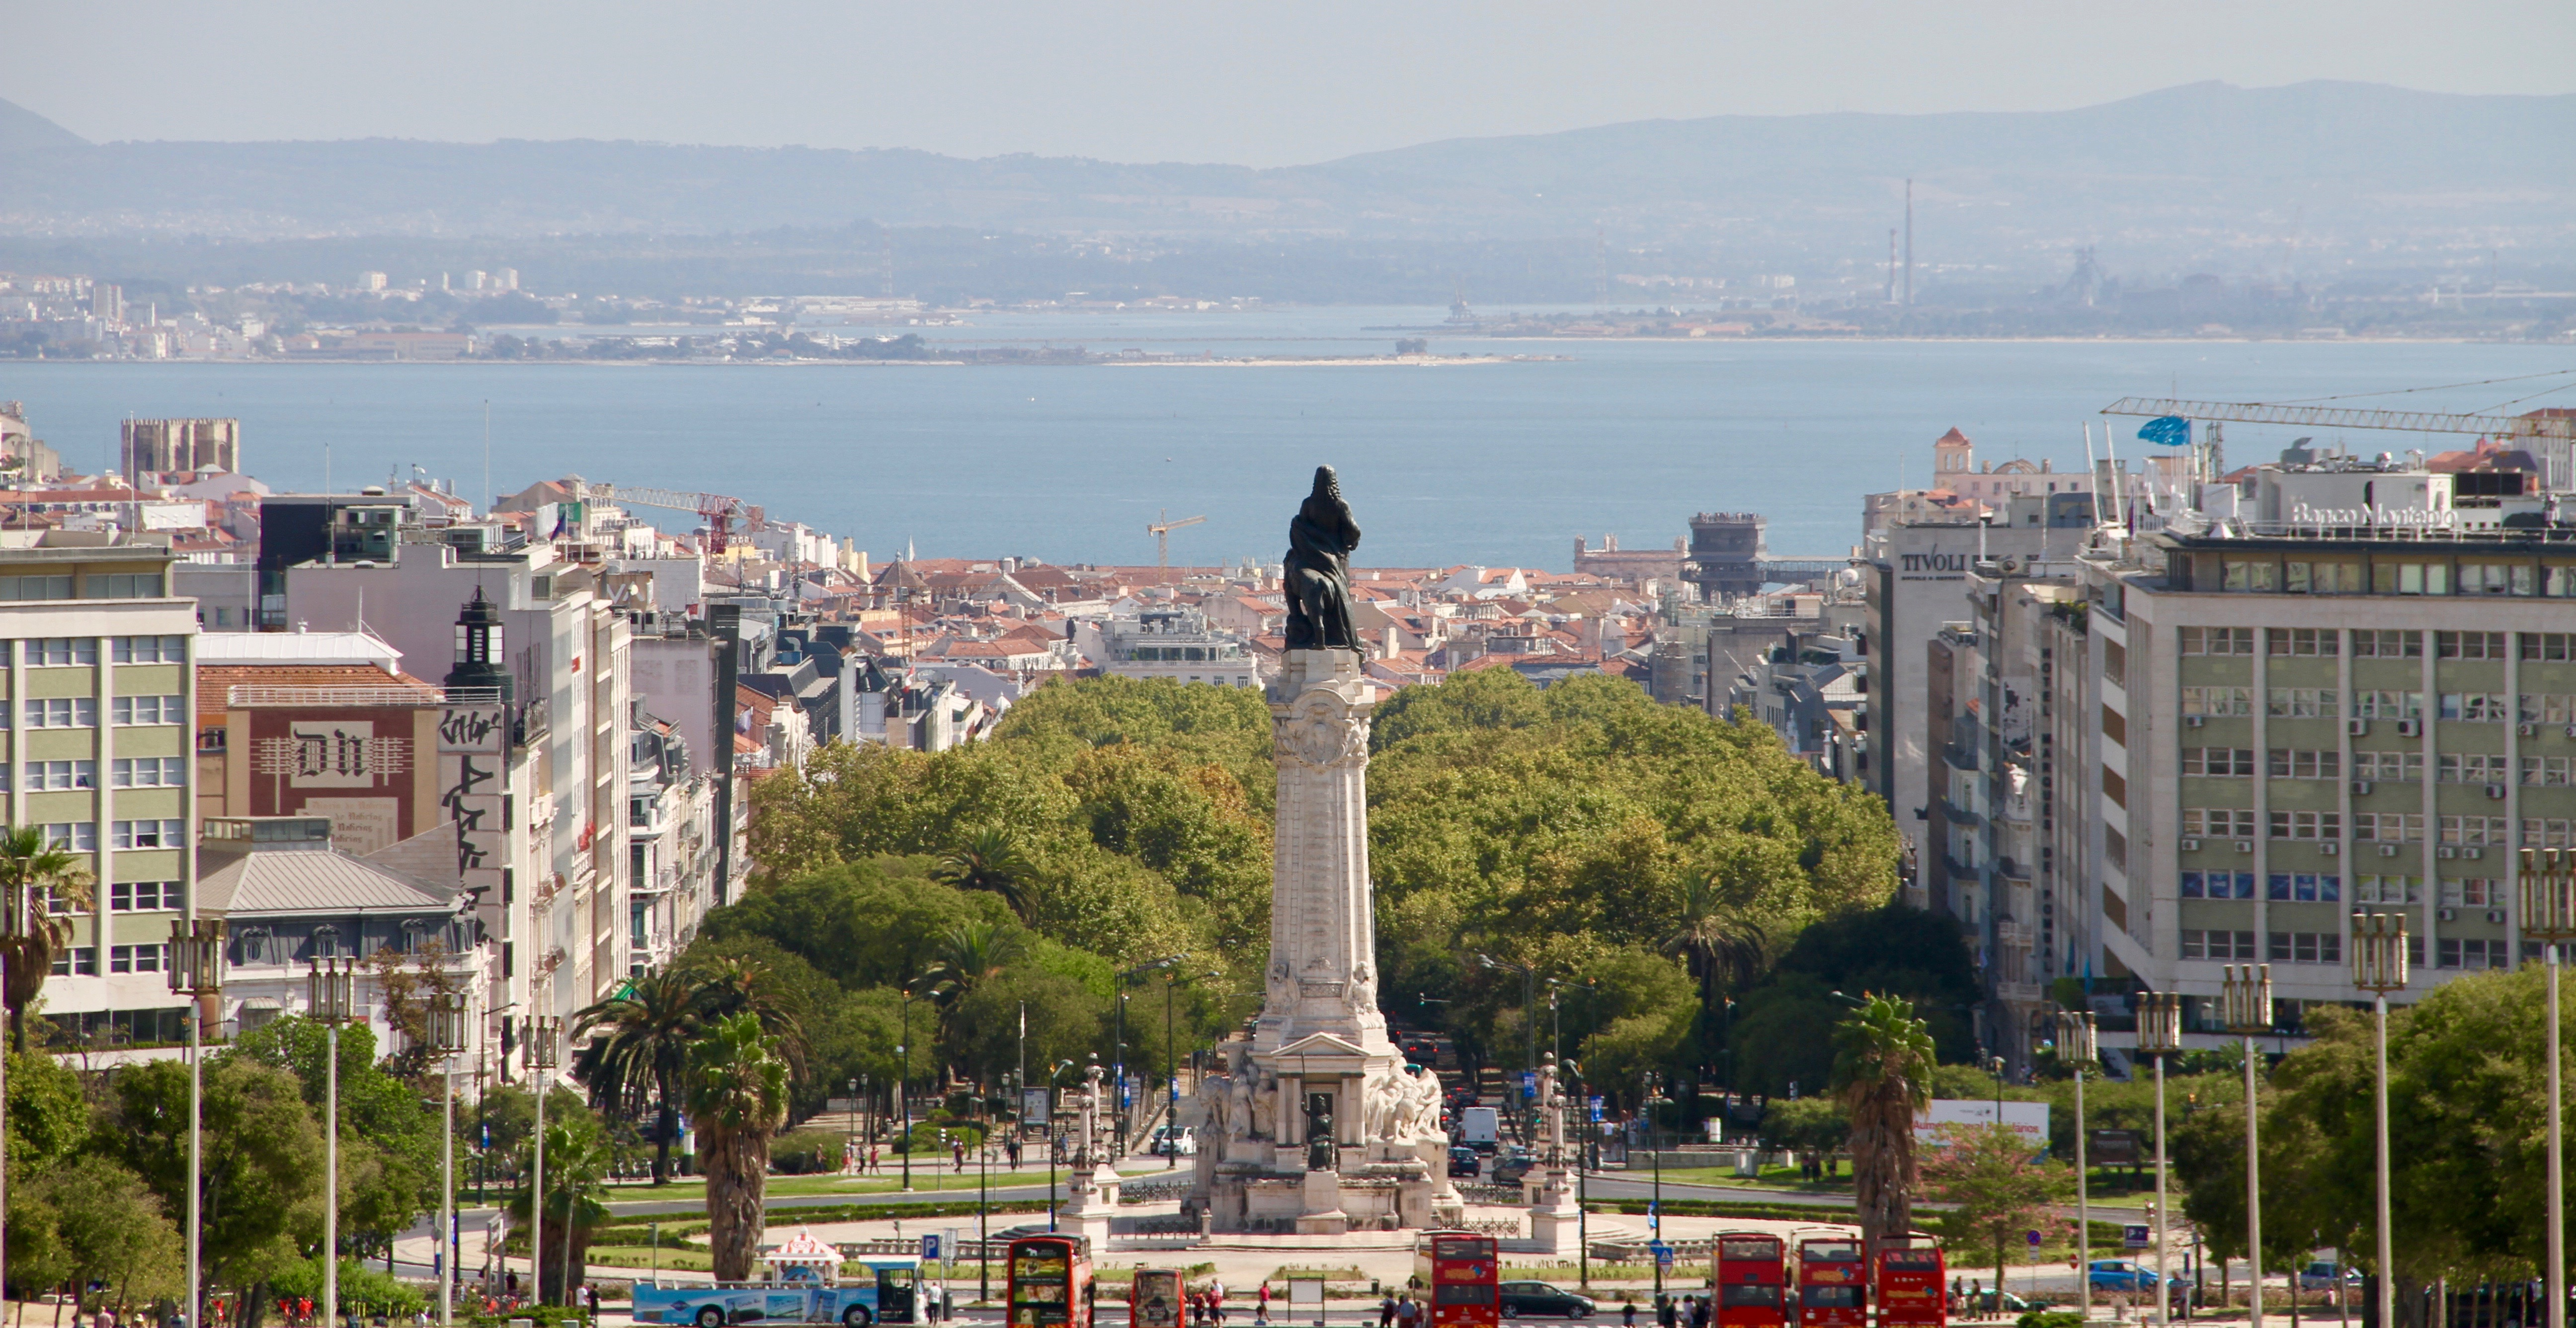 The historic area of central Lisbon, Portugal, and the Tagus River is seen from the top part of the Eduardo VII Park on Sunday, Sept. 15, 2019.